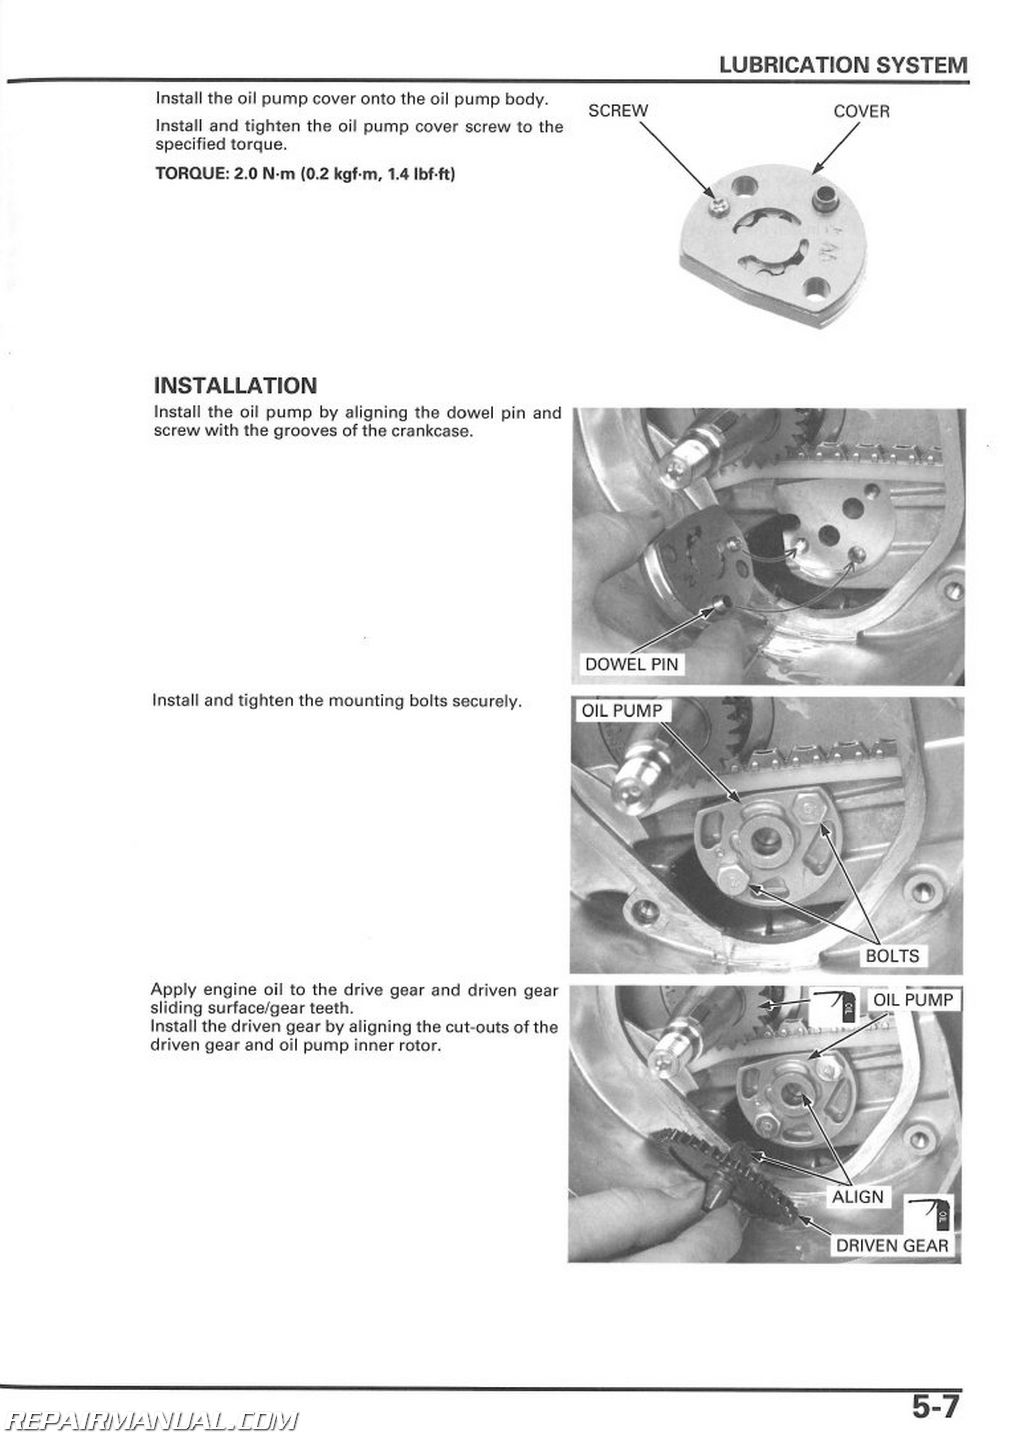 96095 2004 Honda Ruckus Owners Manual on Honda Motorcycle Repair Guide